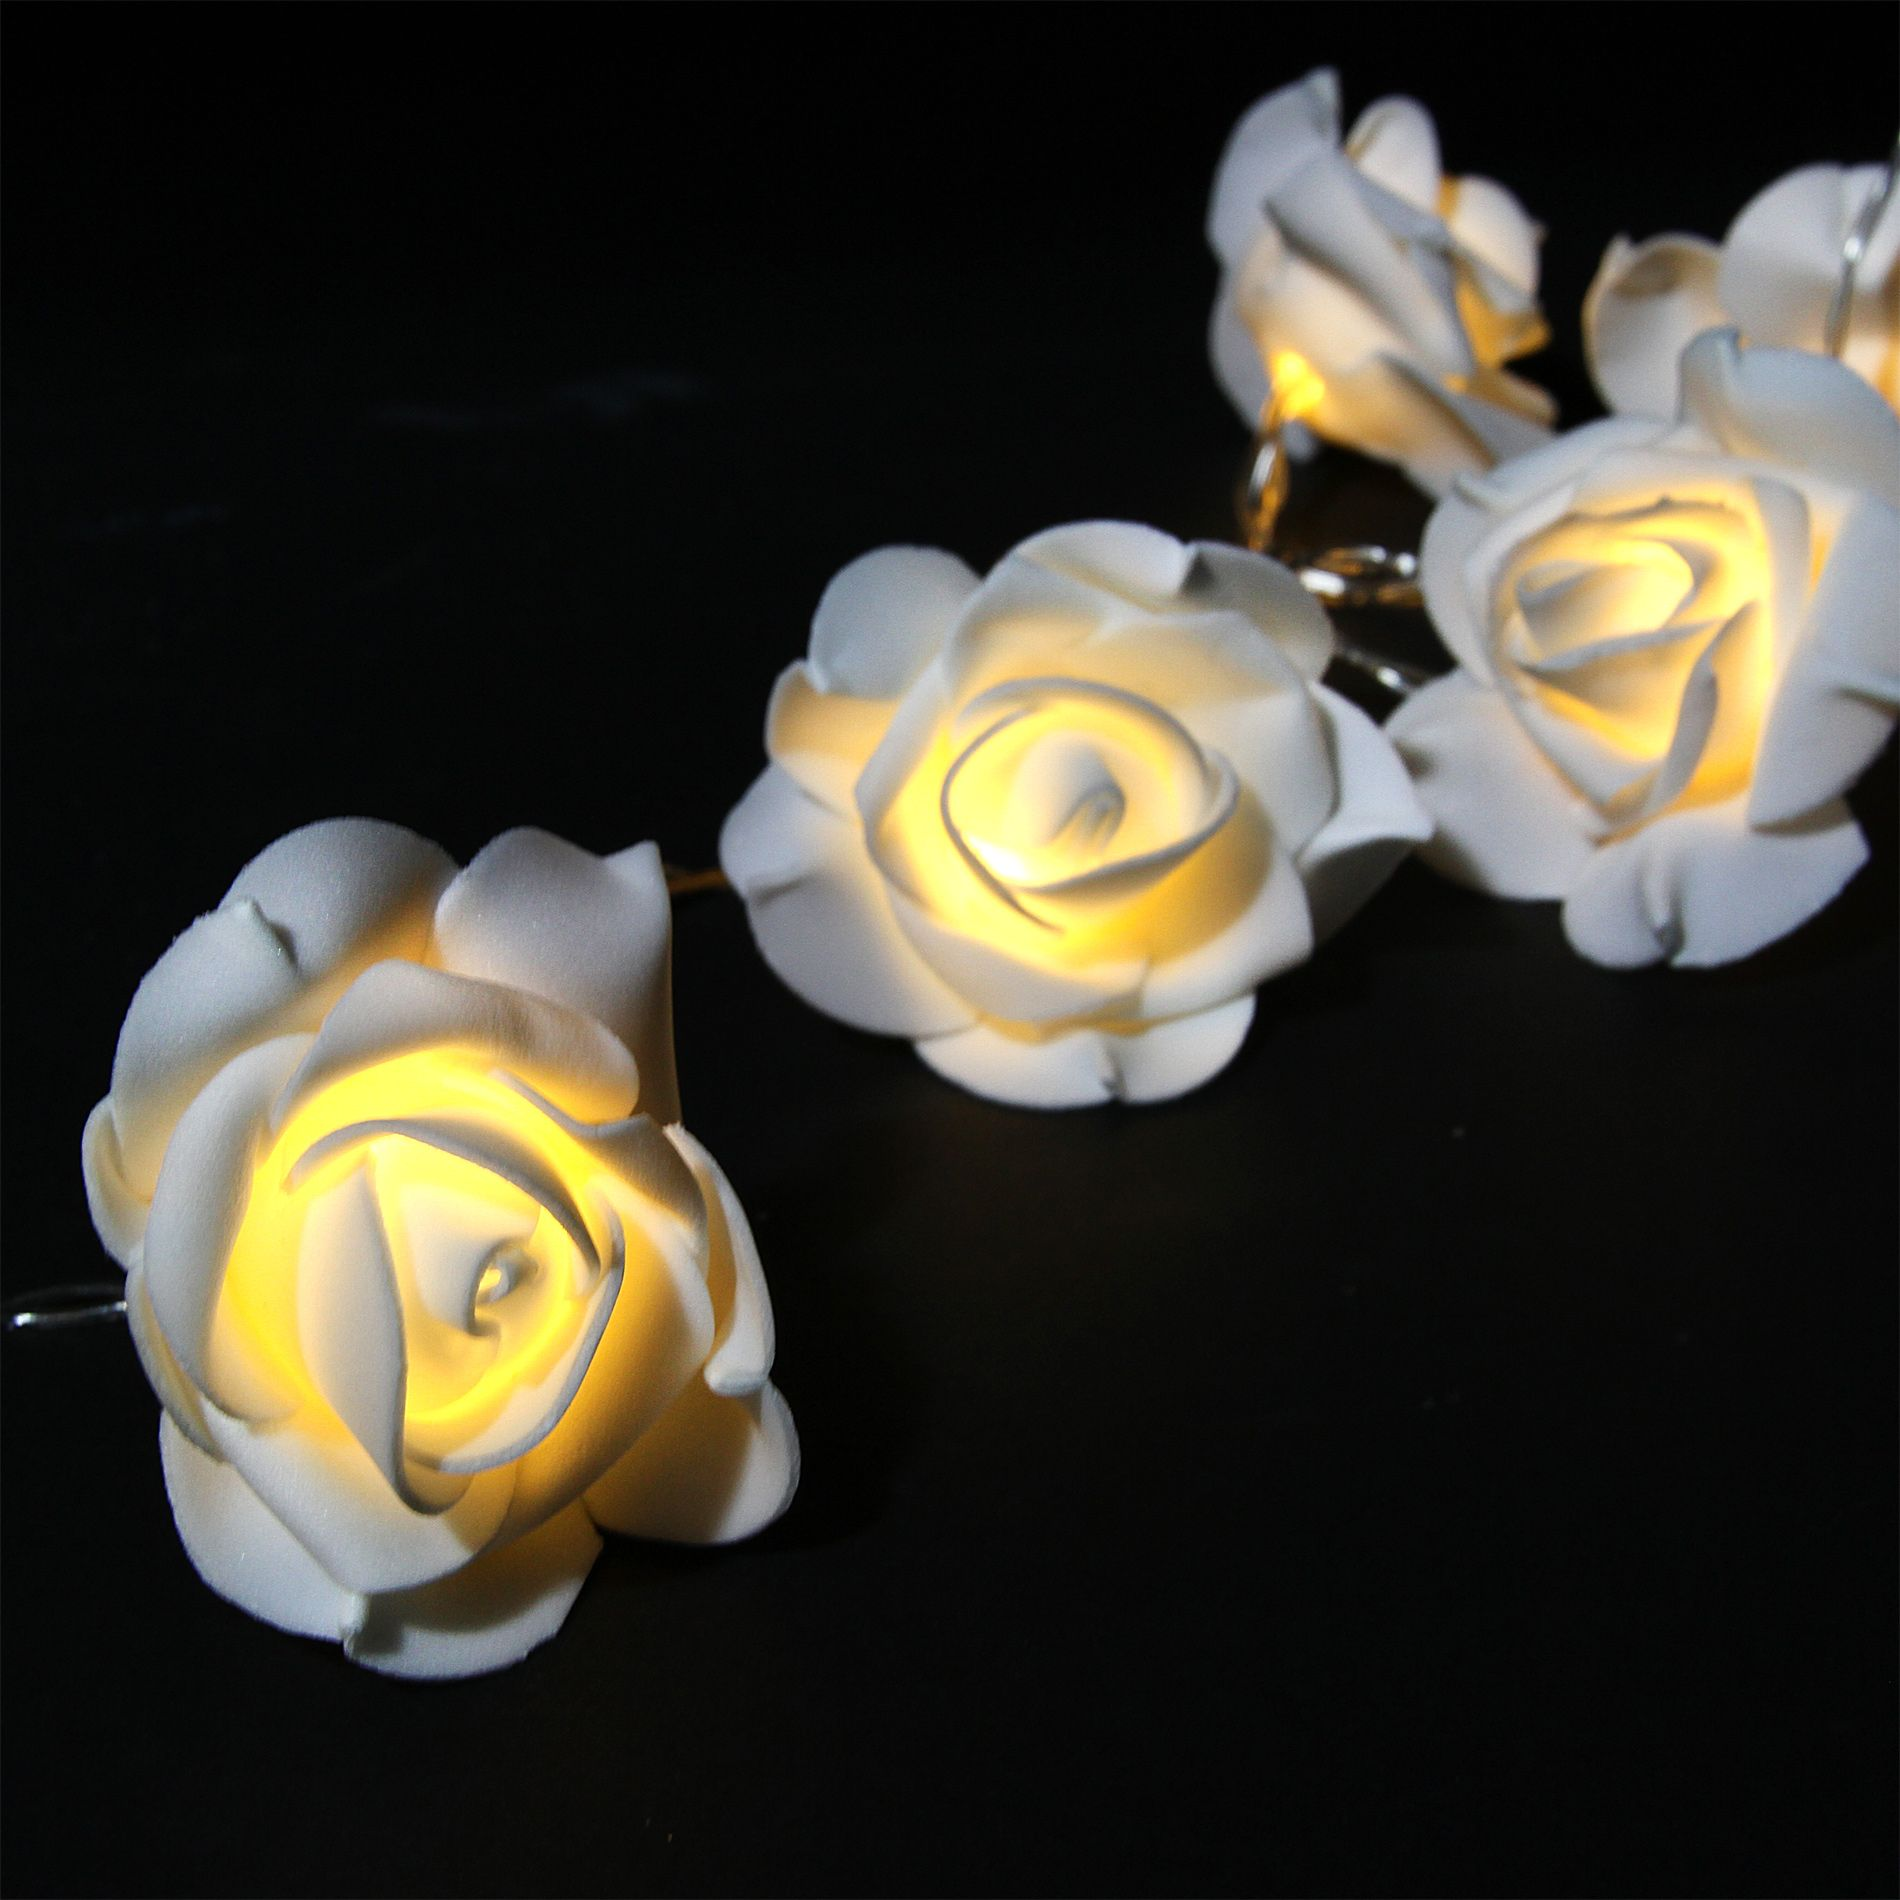 Guirlande Blanche Noel Guirlande Lumineuse Rose Blanche Blanc Chaud 15 Led